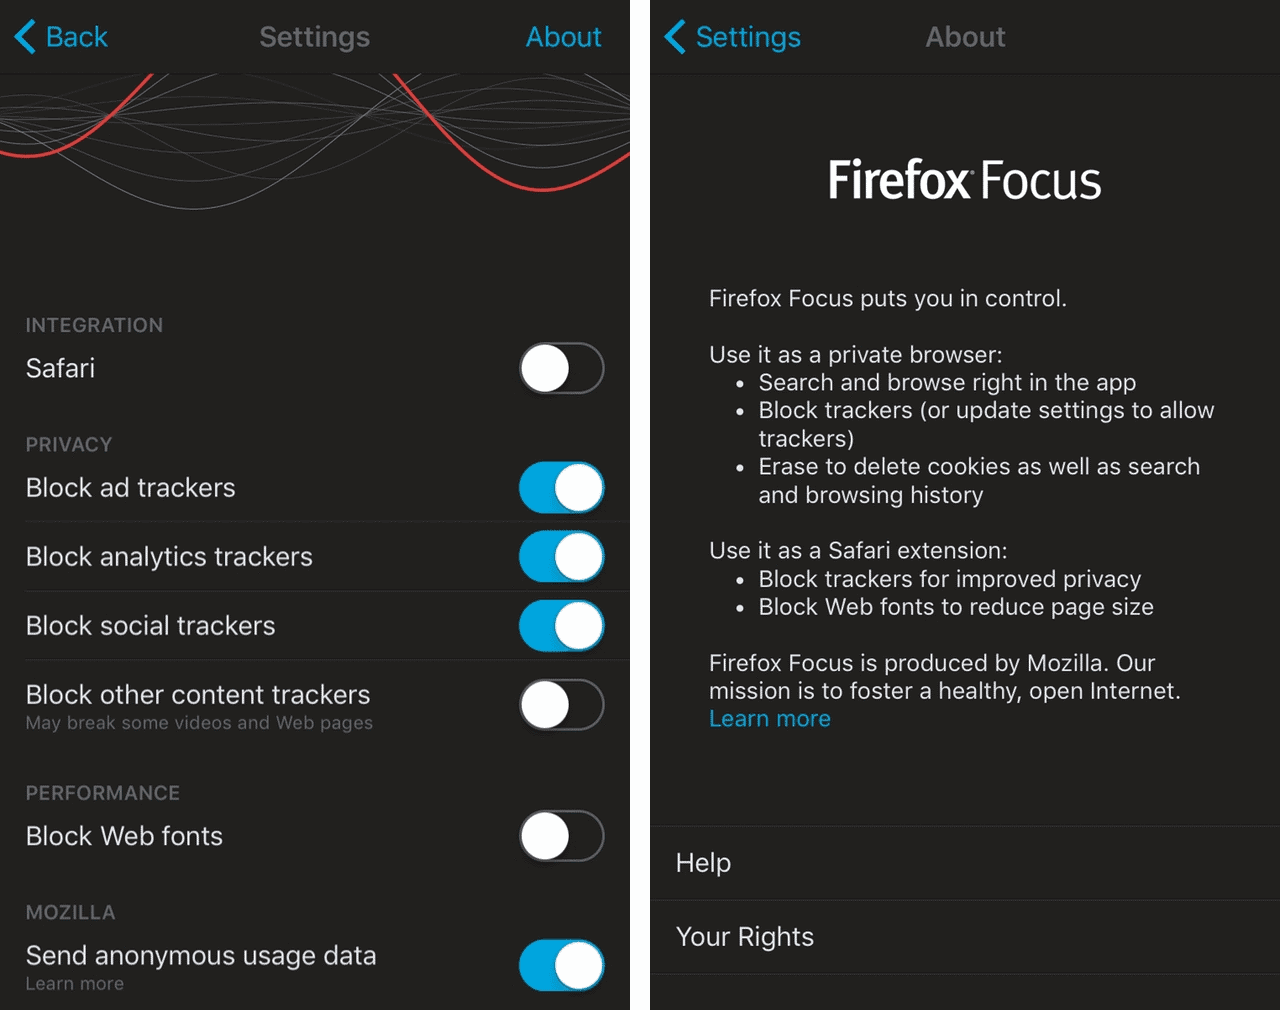 Firefox Focus privacy scandal